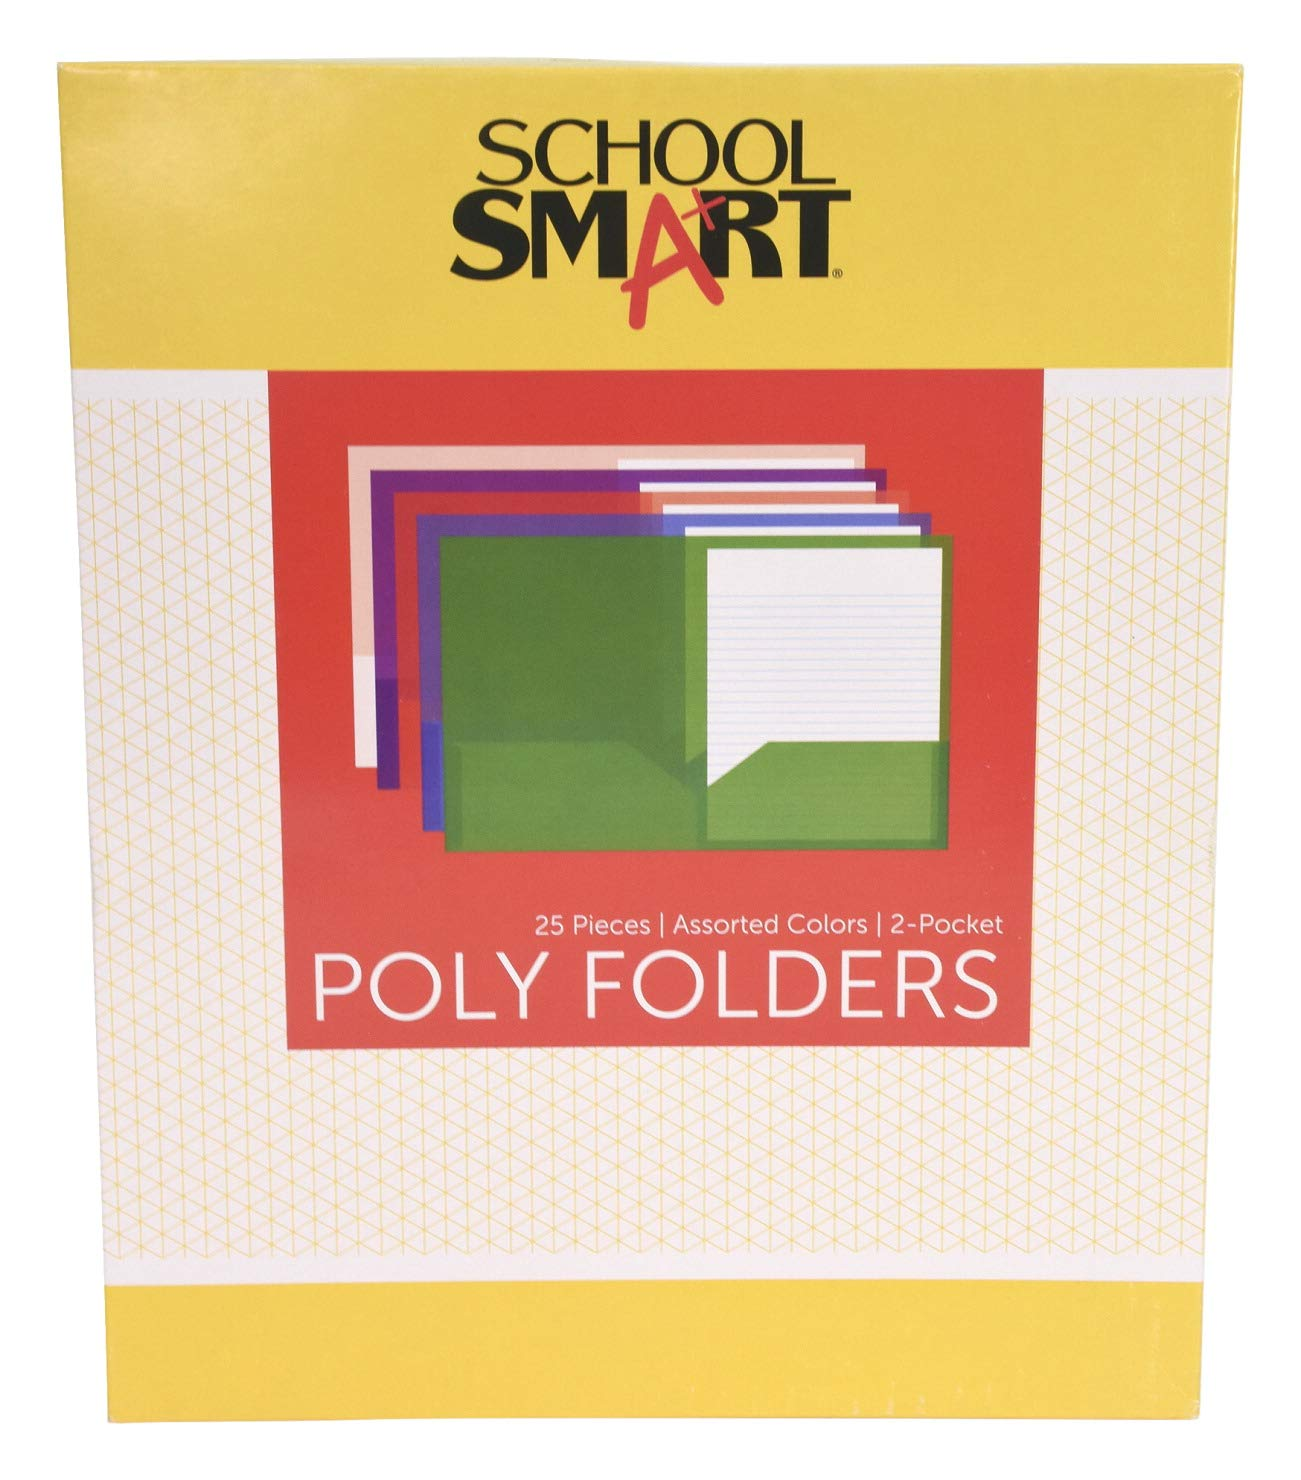 School Smart 2-Pocket Portfolios Without Fasteners, 8-1/2 x 11 Inches, Assorted Colors, Pack of 25 by School Smart